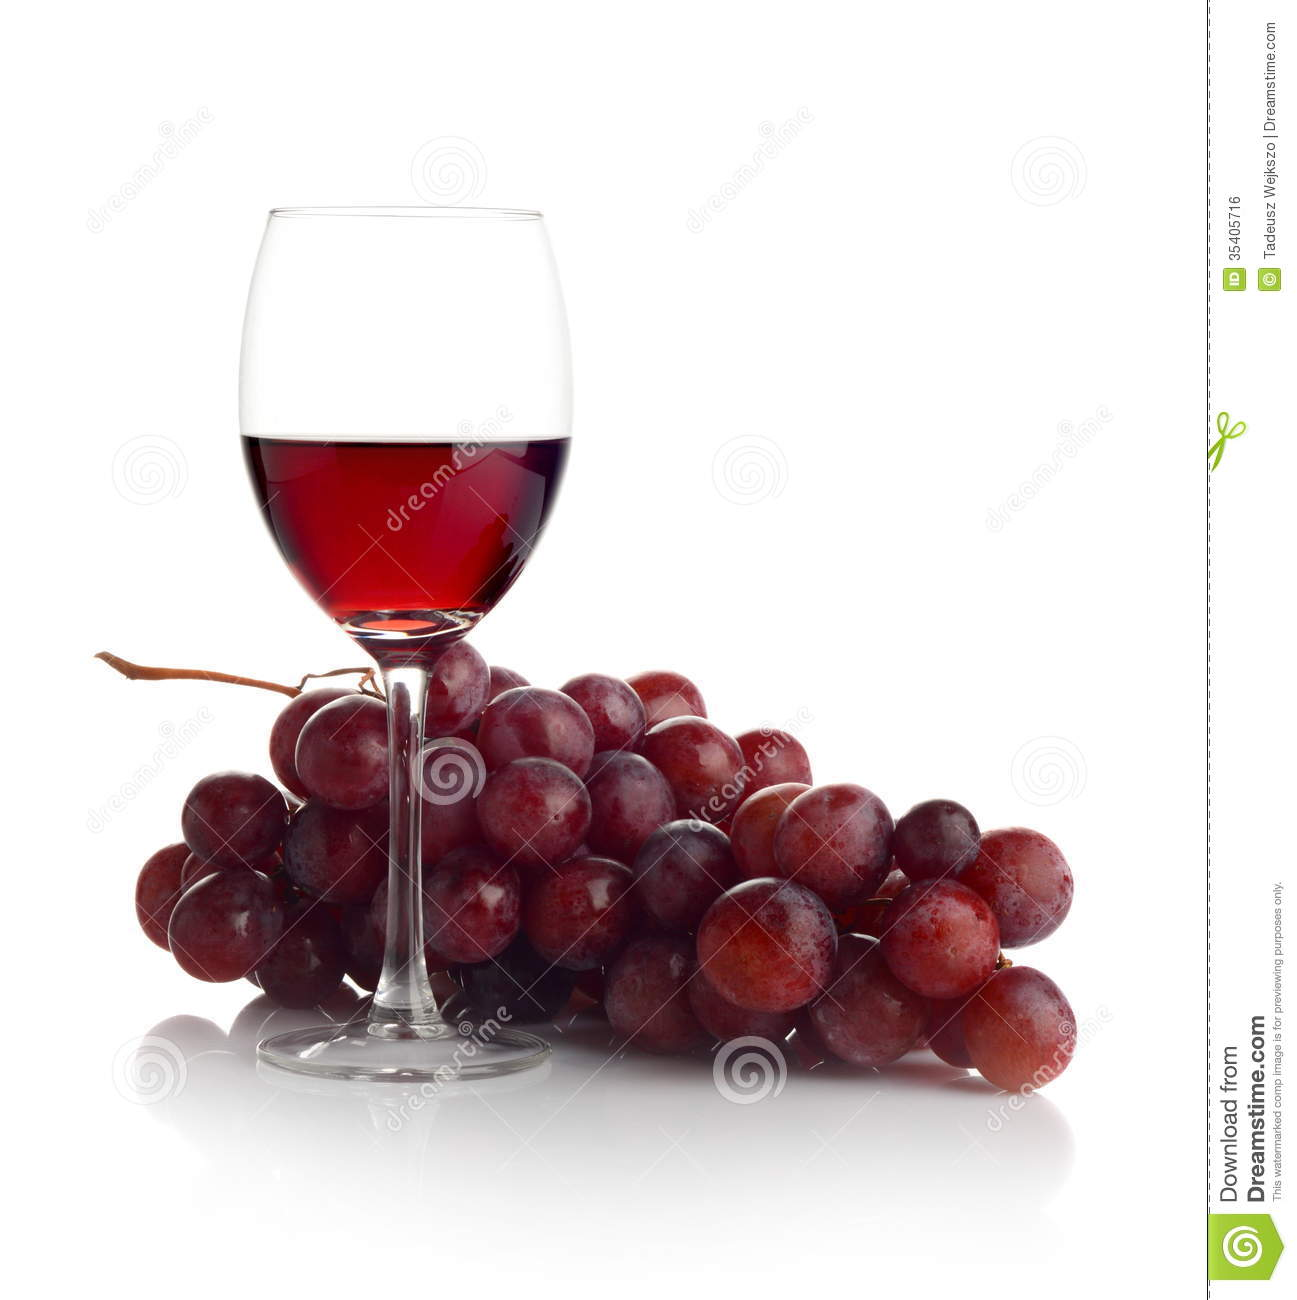 Red Wine And Grapes On White Stock Photo - Image: 35405716